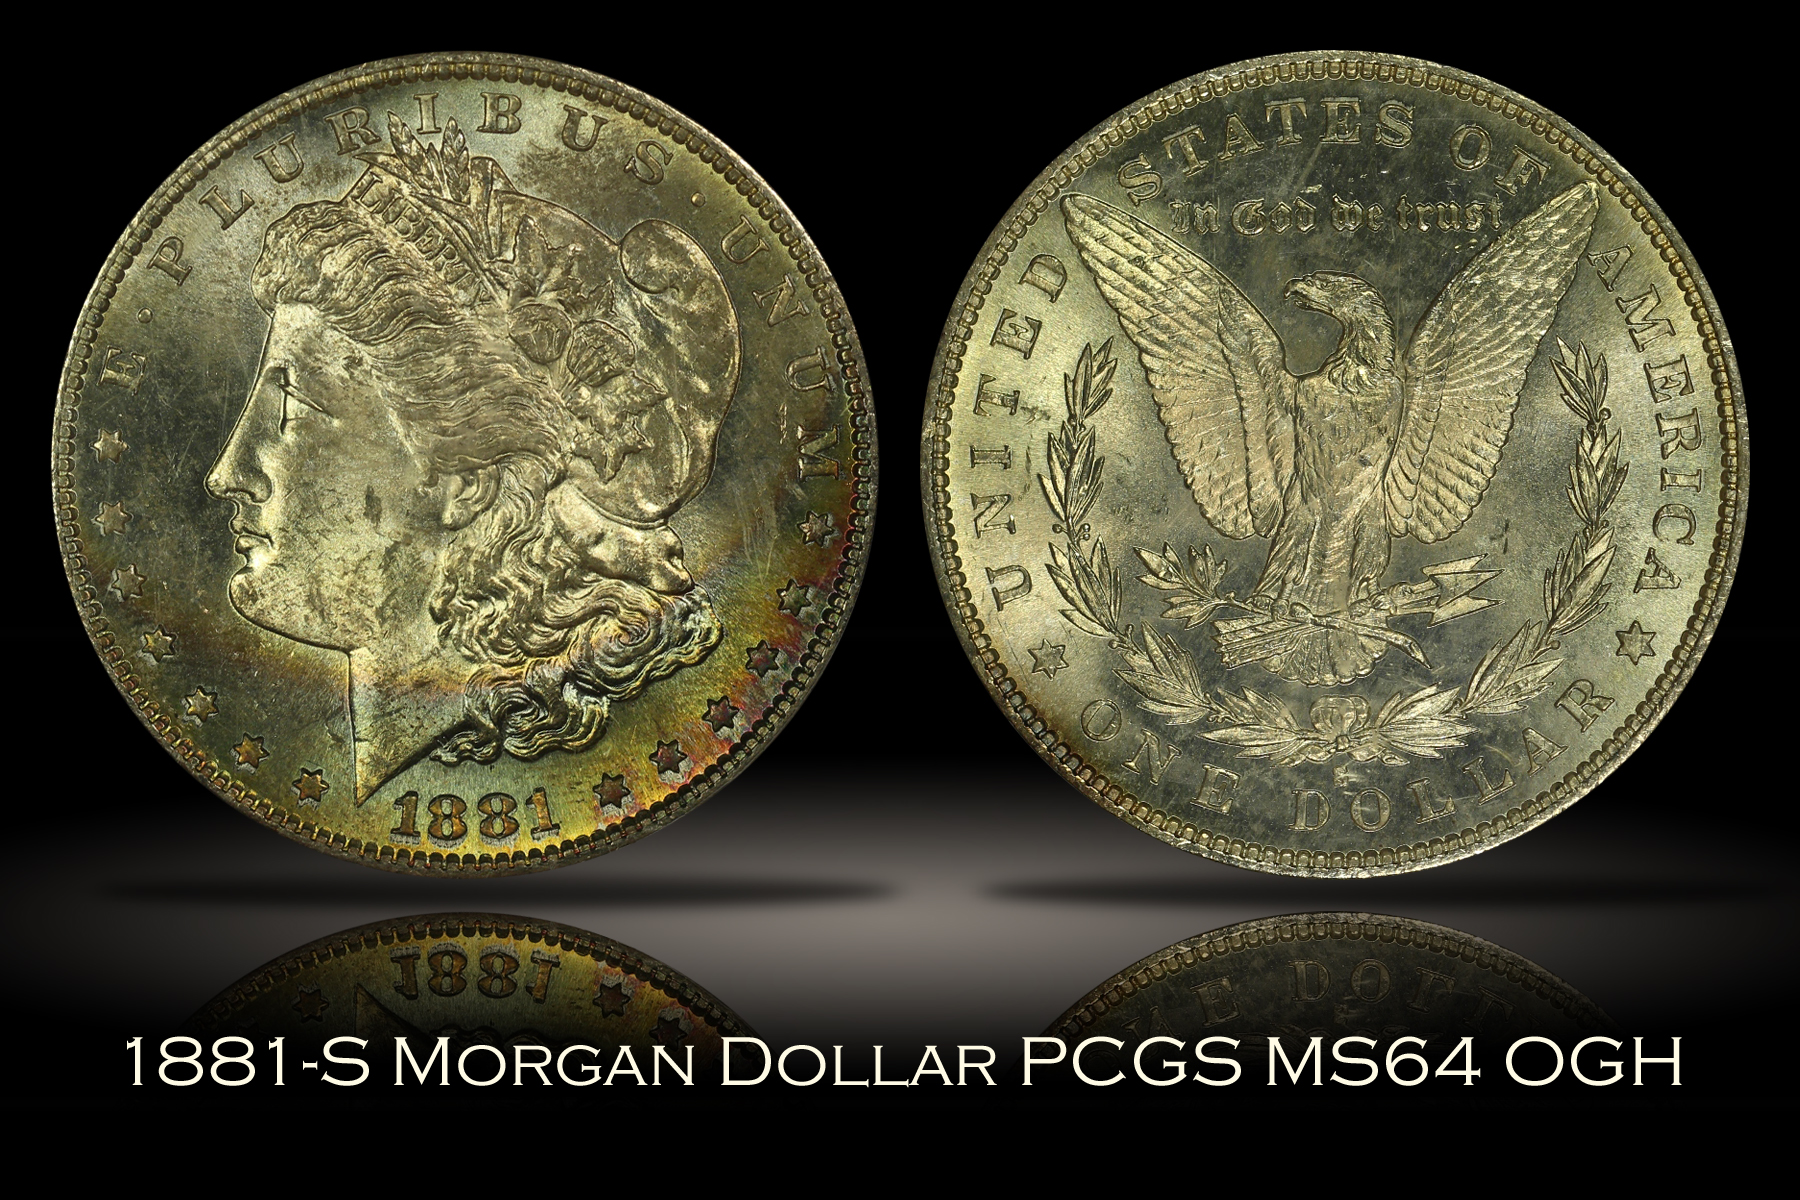 1881-S Morgan Dollar PCGS MS64 OGH